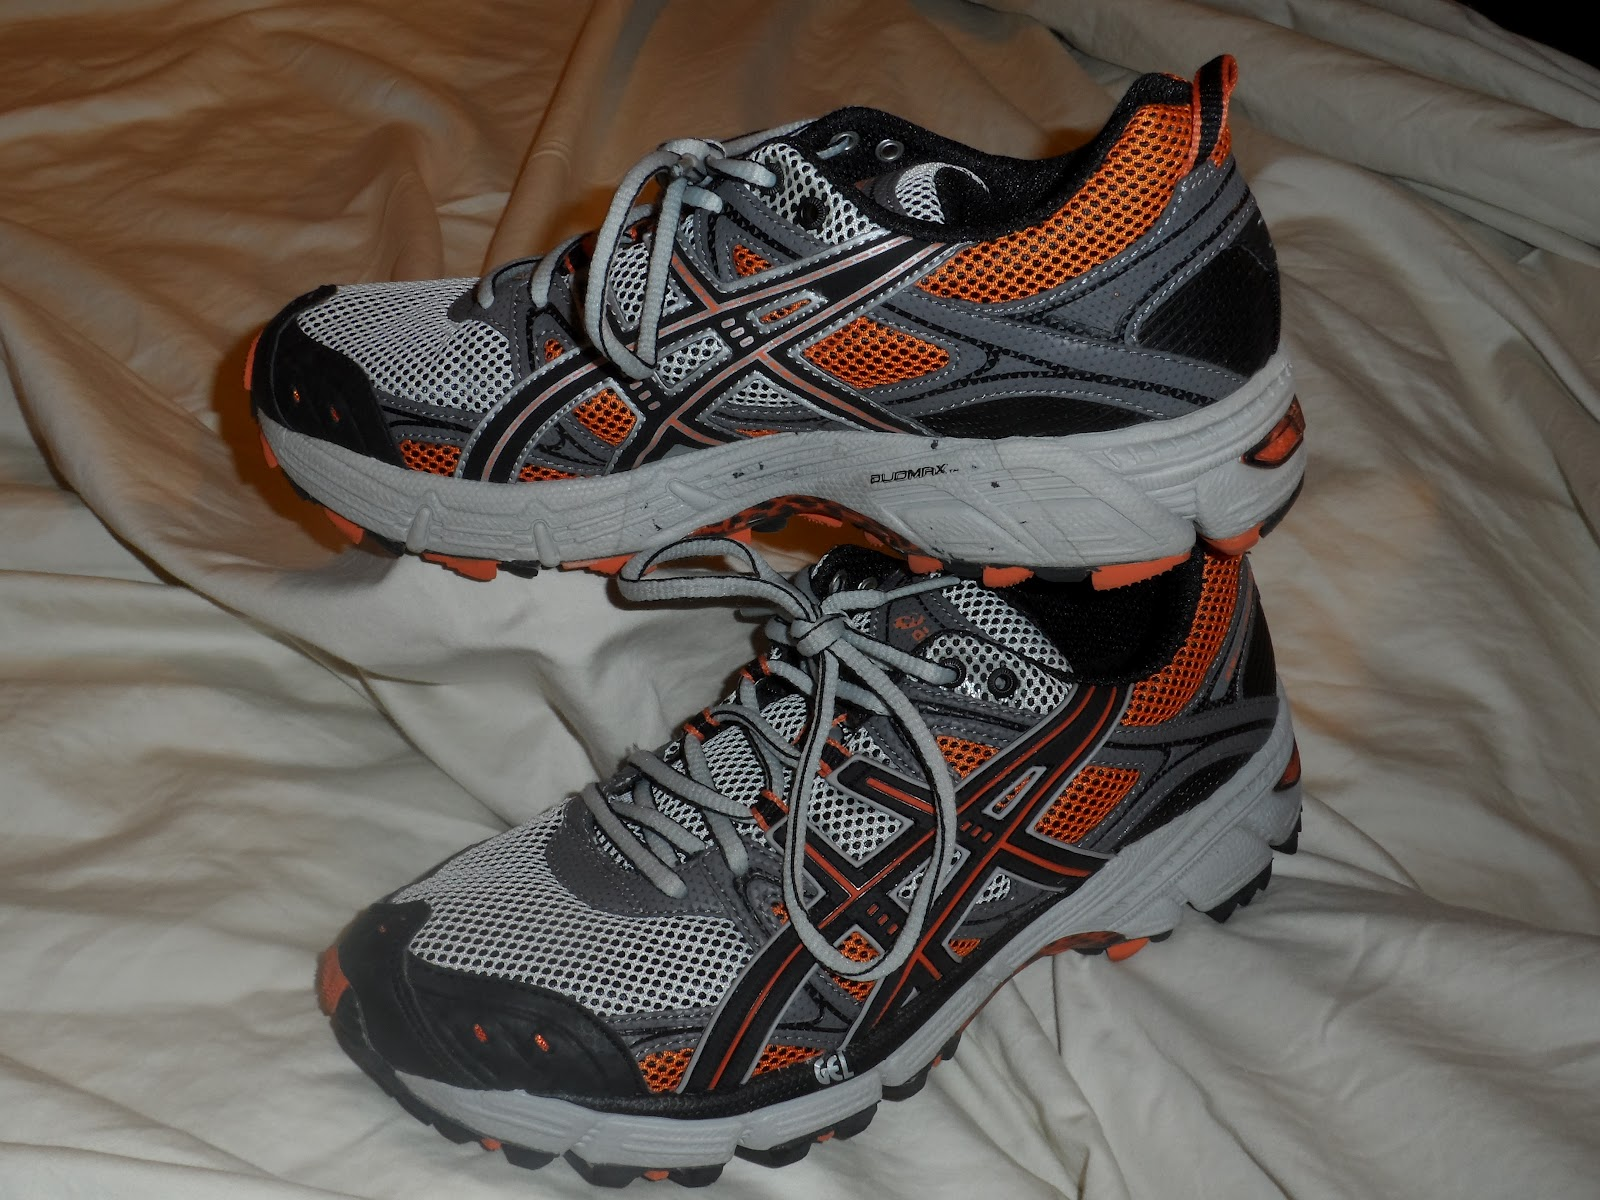 $75 Asics Shoes for $41...What a deal!